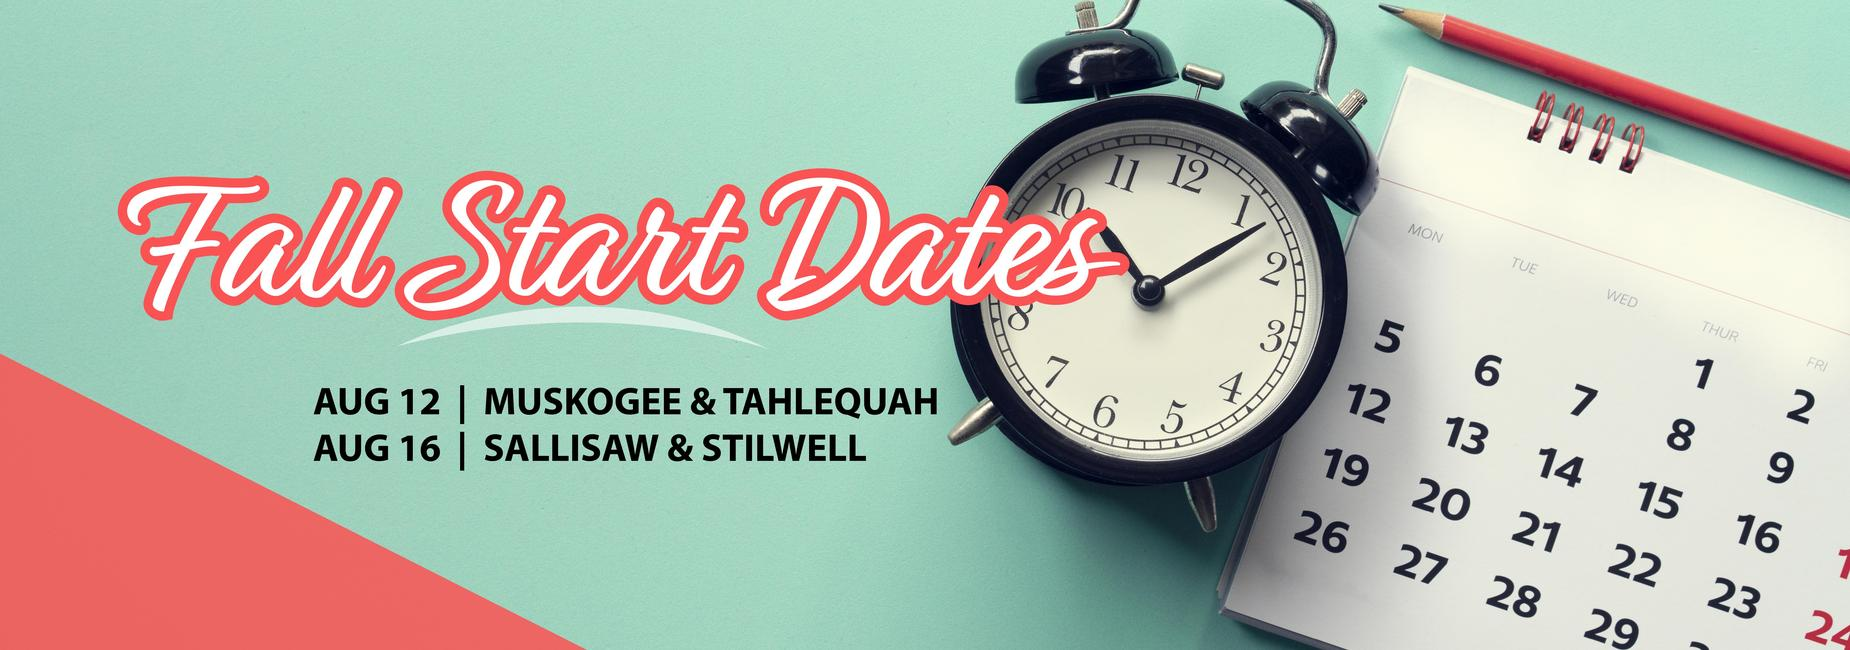 Image of a calendar and a clock with text that reads: Fall Start Dates - AUG 12-Muskogee & Tahlequah, AUG 16-Sallisaw & Stilwell